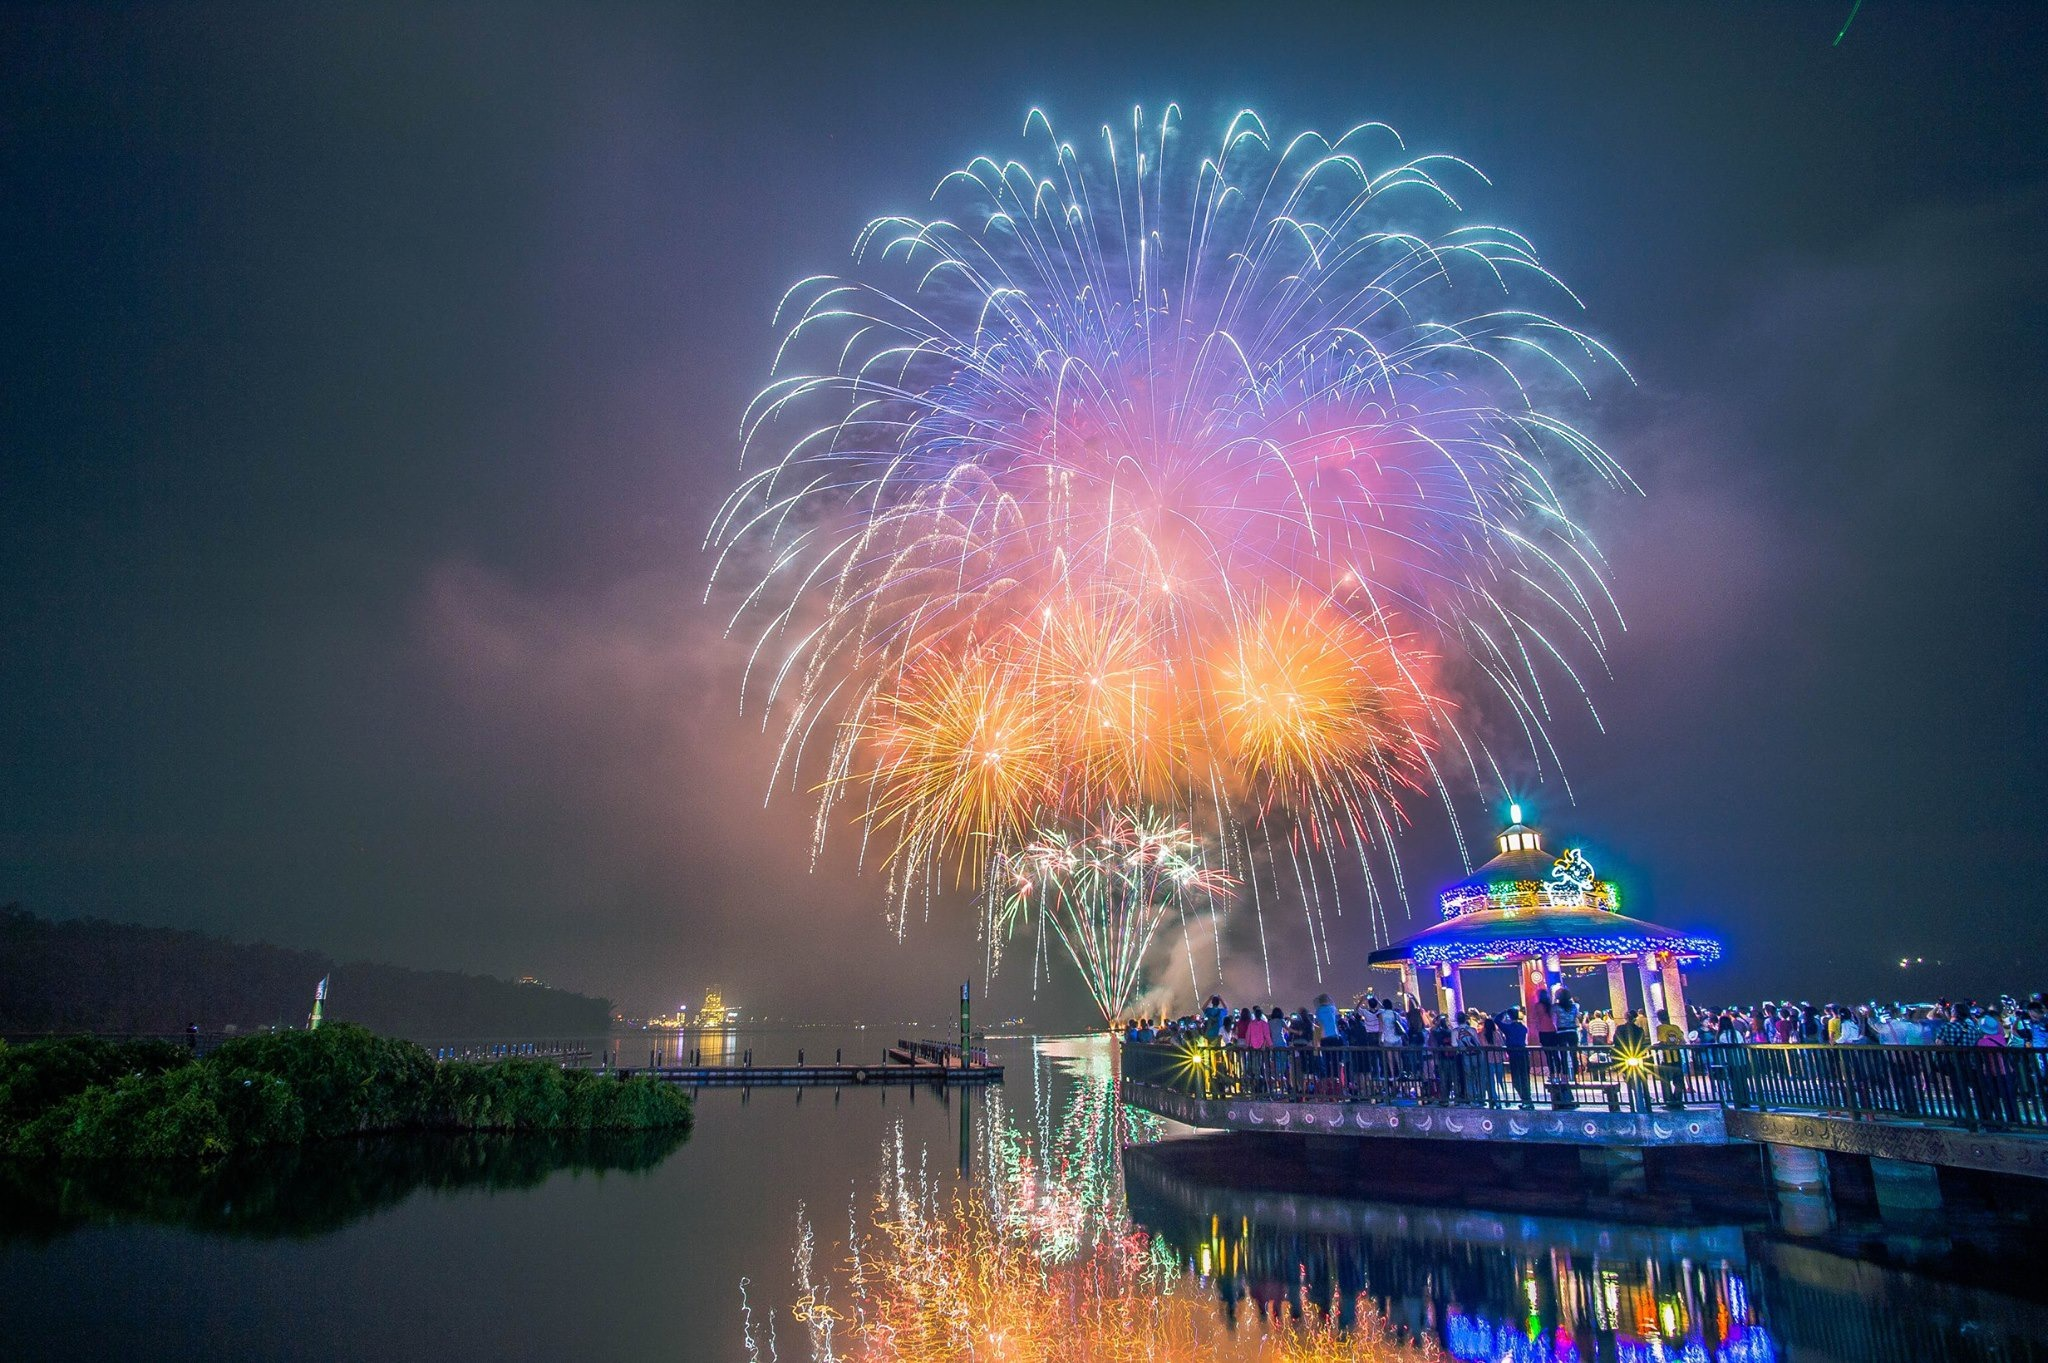 2019 Sun Moon Lake Cycling, Music & Fireworks Festival